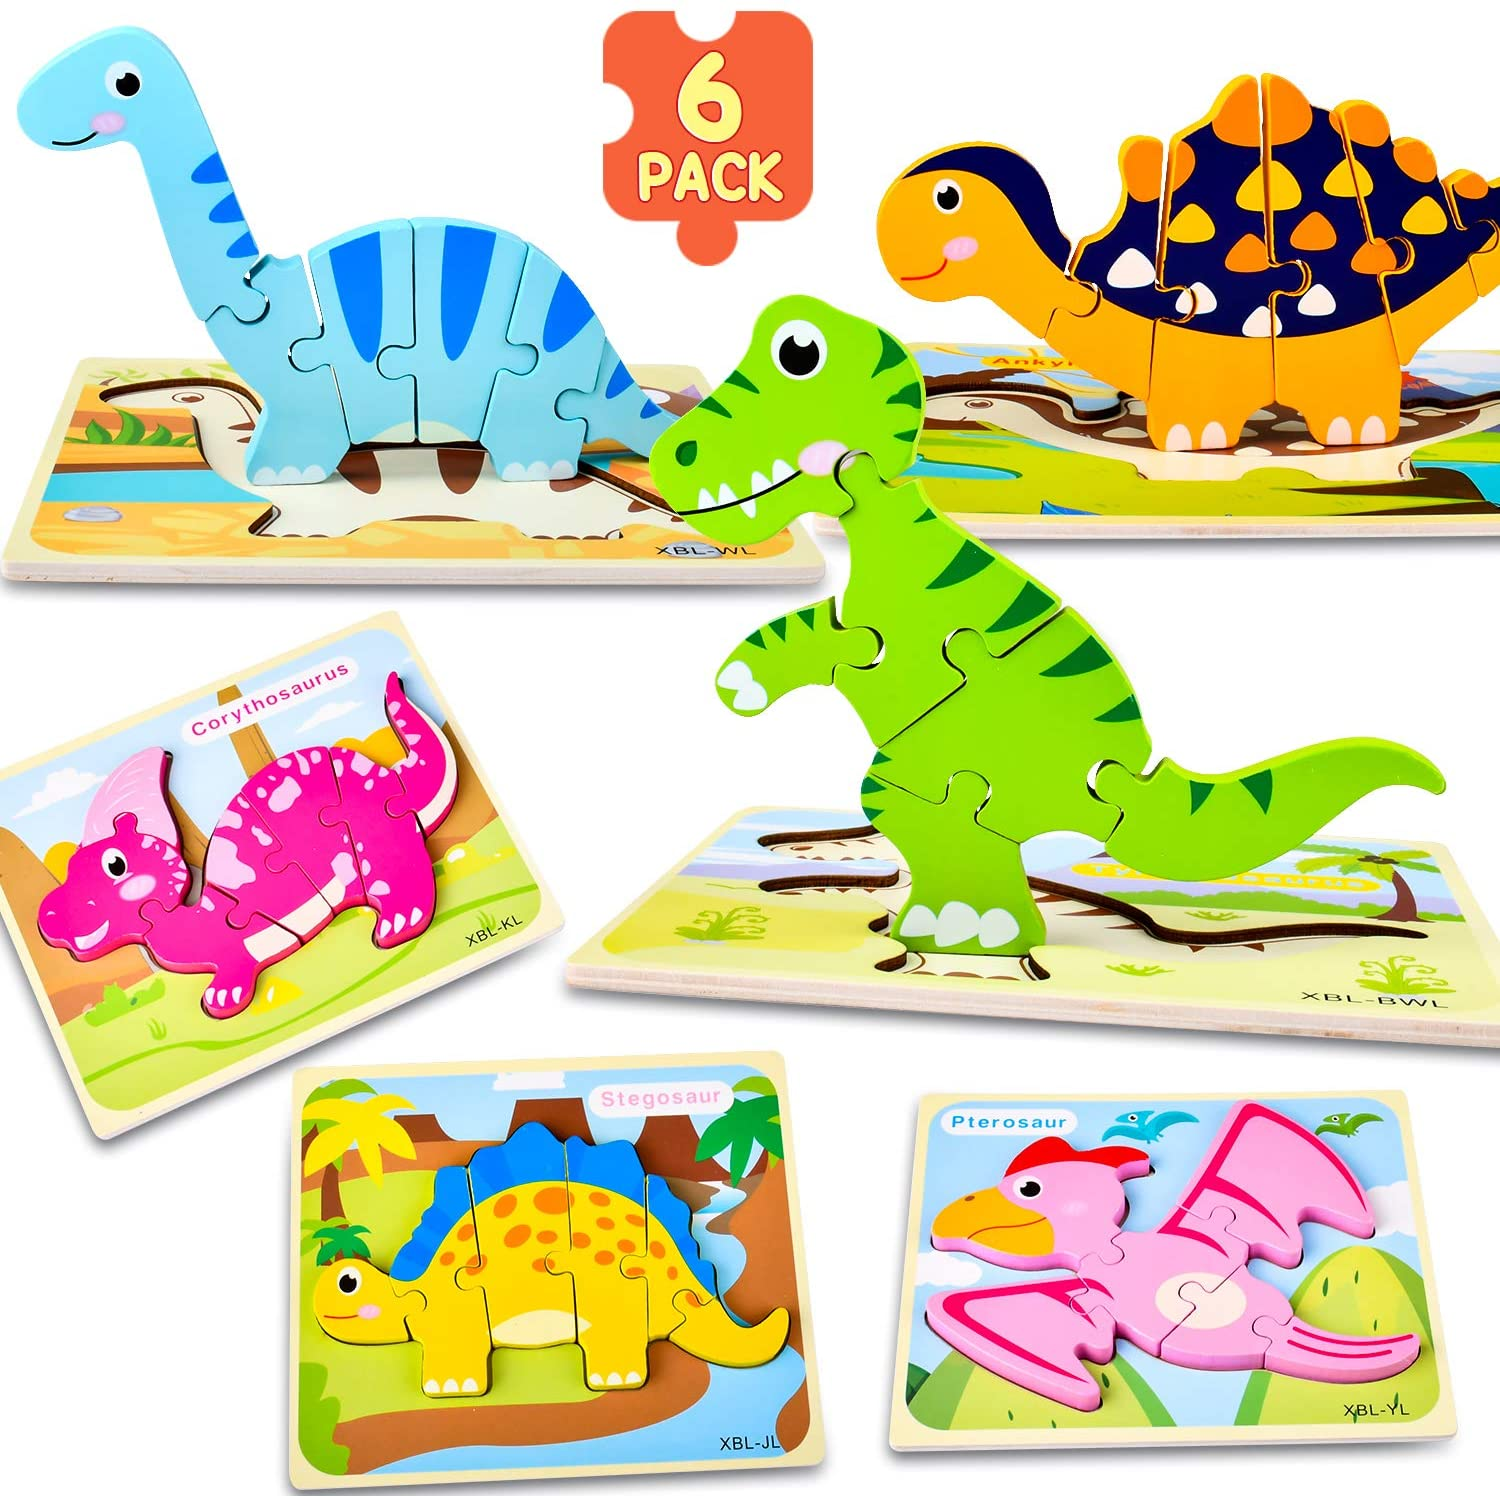 ELIKIDSTO Toys for Toddlers,Montessori Wooden Jigsaw Puzzle Set,6 Pack Animals Dinasurs Shape Color Jigsaw Puzzle for Toddlers Activities,Motor Skill Preschool Learning Toys for 2 3 4 5 Years Kids